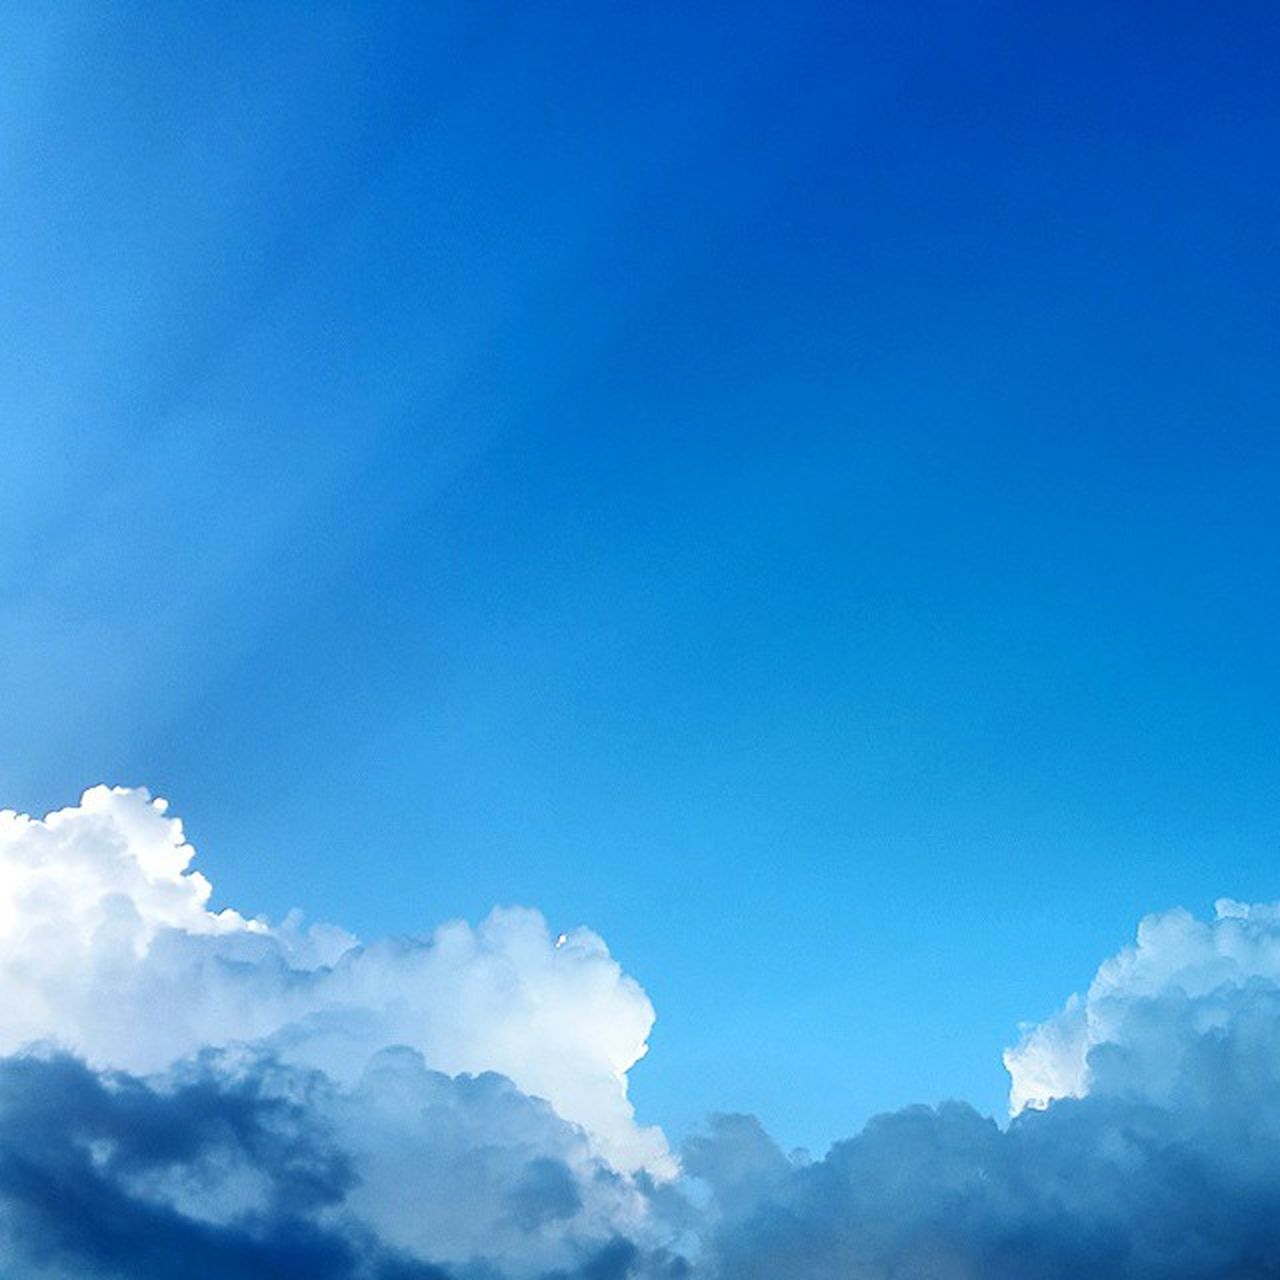 blue, nature, cloud - sky, tranquility, beauty in nature, sky, sky only, no people, day, low angle view, outdoors, scenics, backgrounds